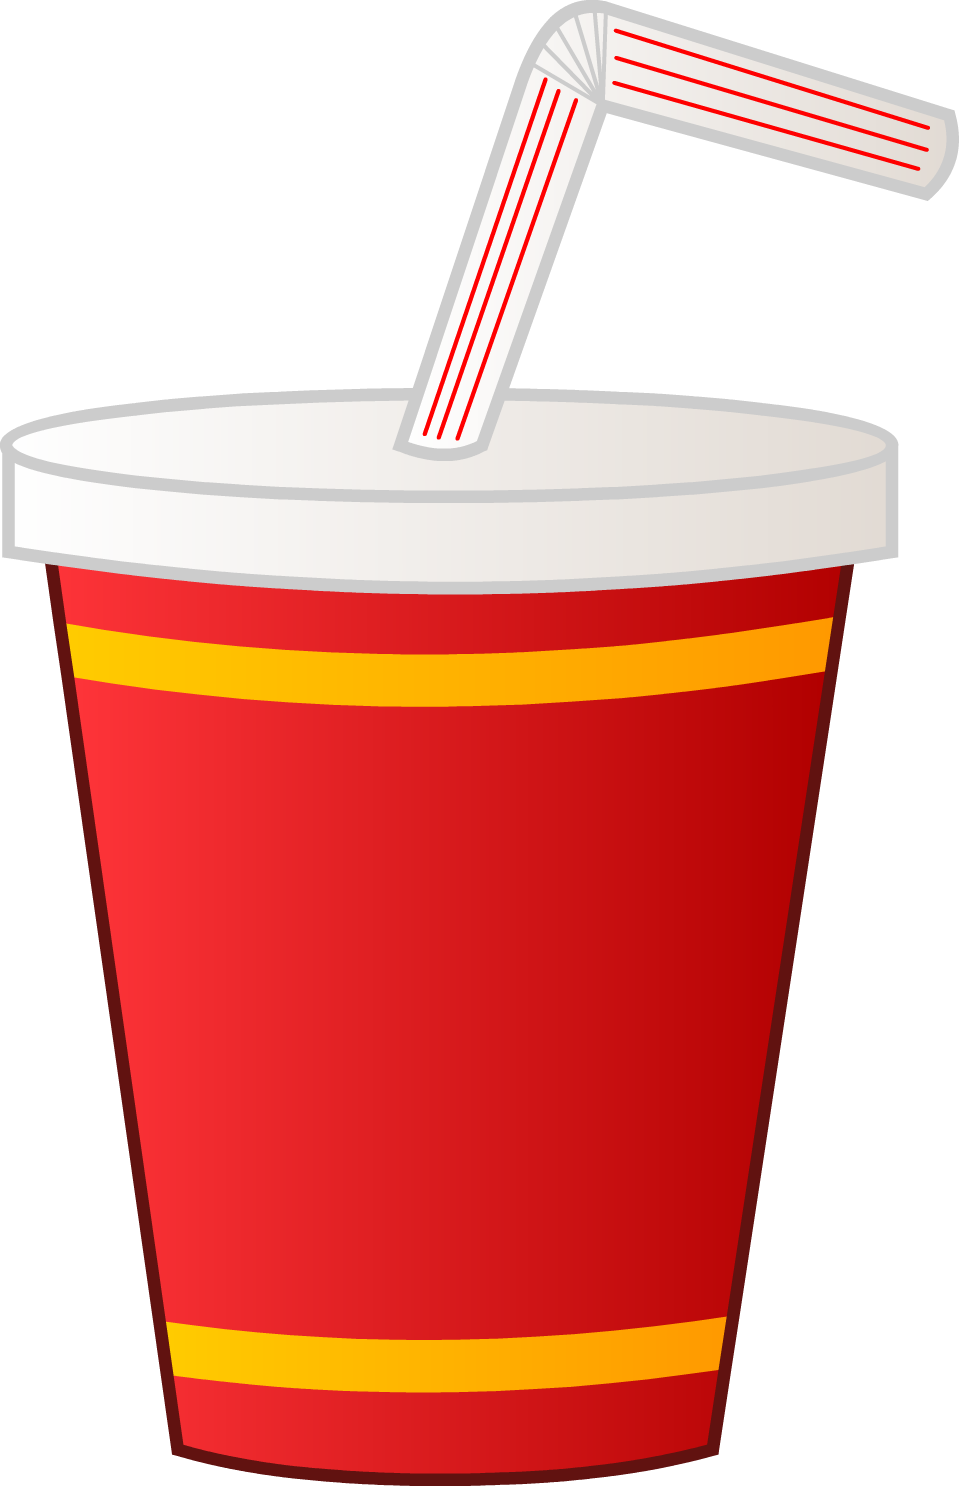 Soda png. Transparent mart vector royalty free stock